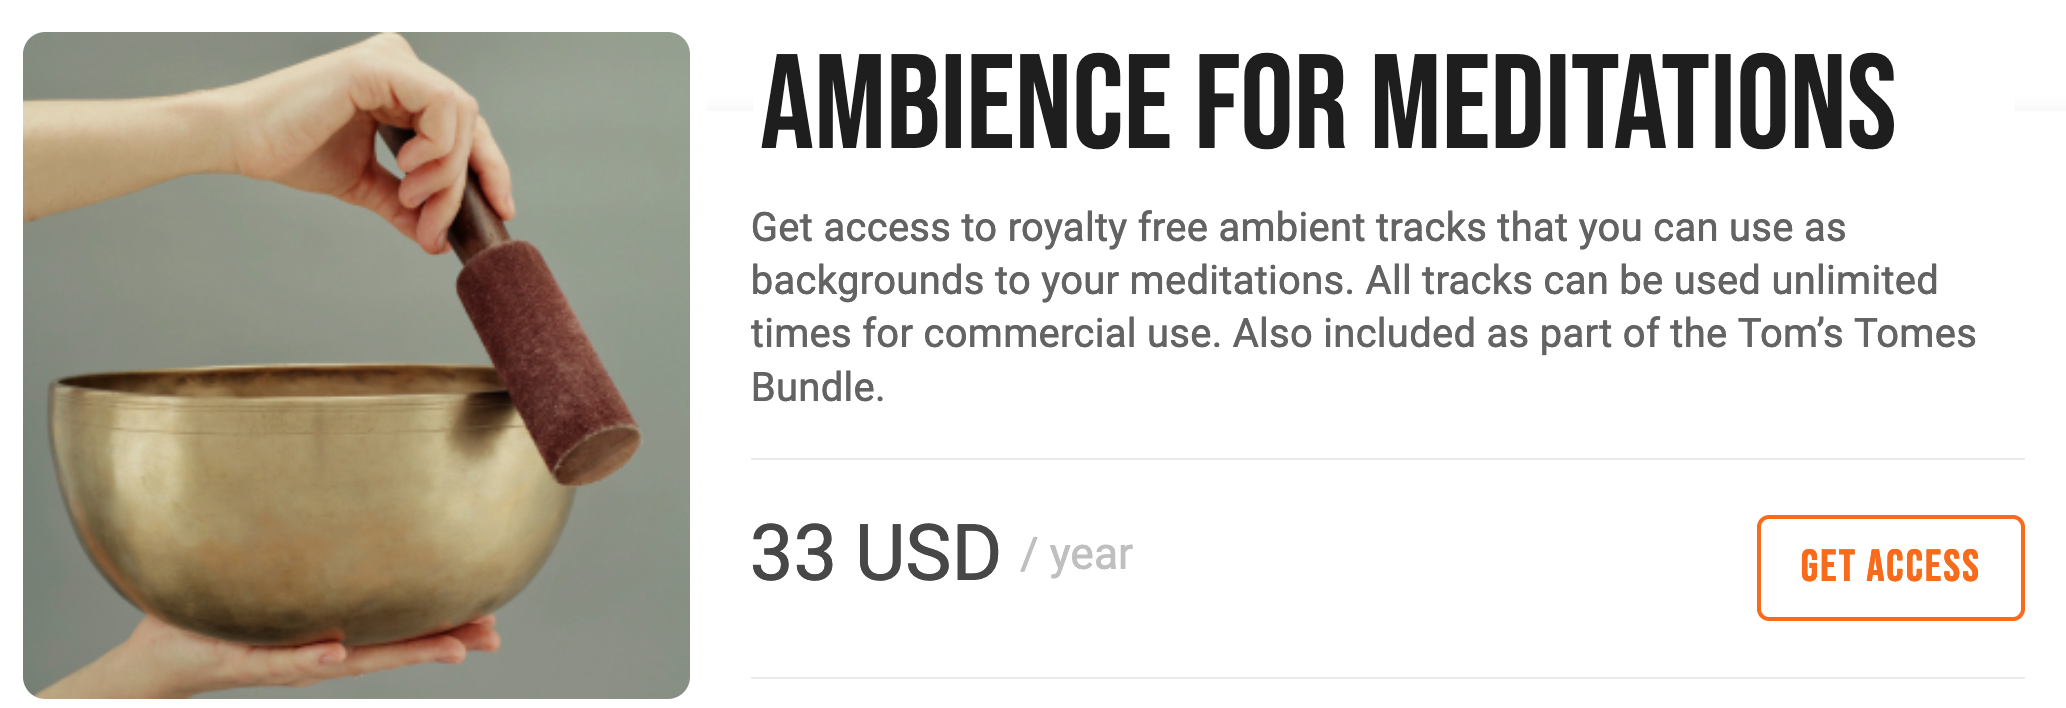 Royalty-free ambience for meditations